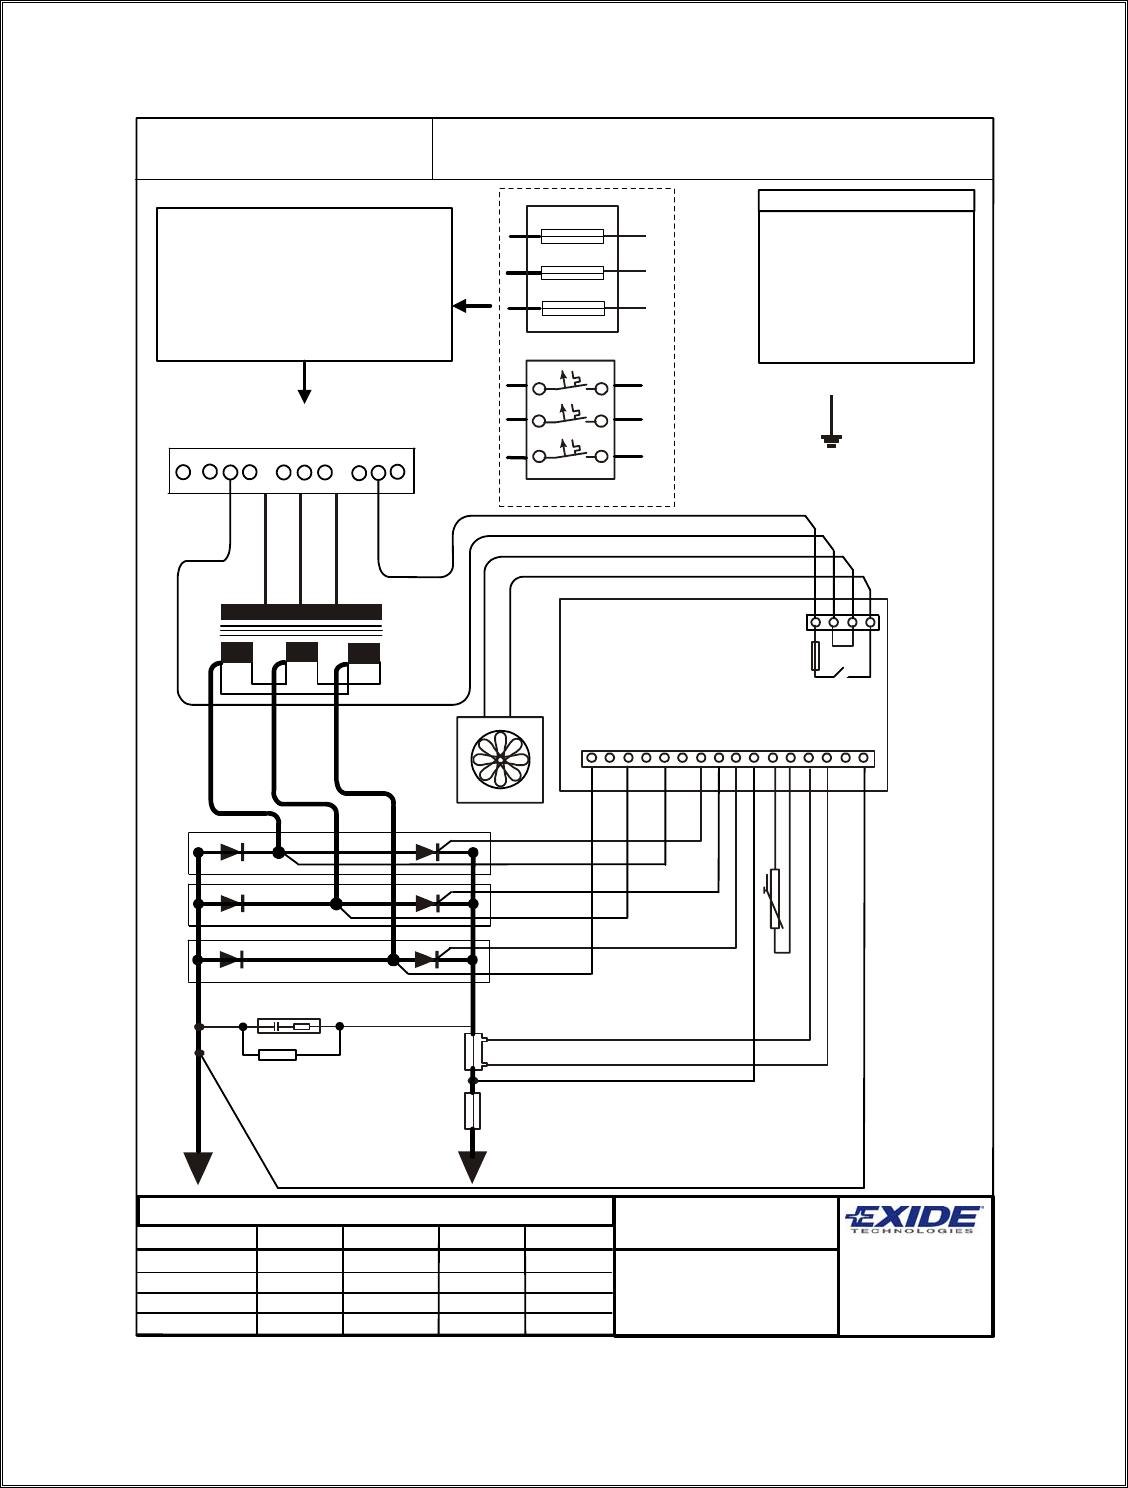 Exide Battery Charger Wiring Diagram - 1998 Chevy Astro Fuse Box Diagram -  fusebox.yenpancane.jeanjaures37.fr | Hobart Battery Charger Wiring Diagram |  | Wiring Diagram Resource